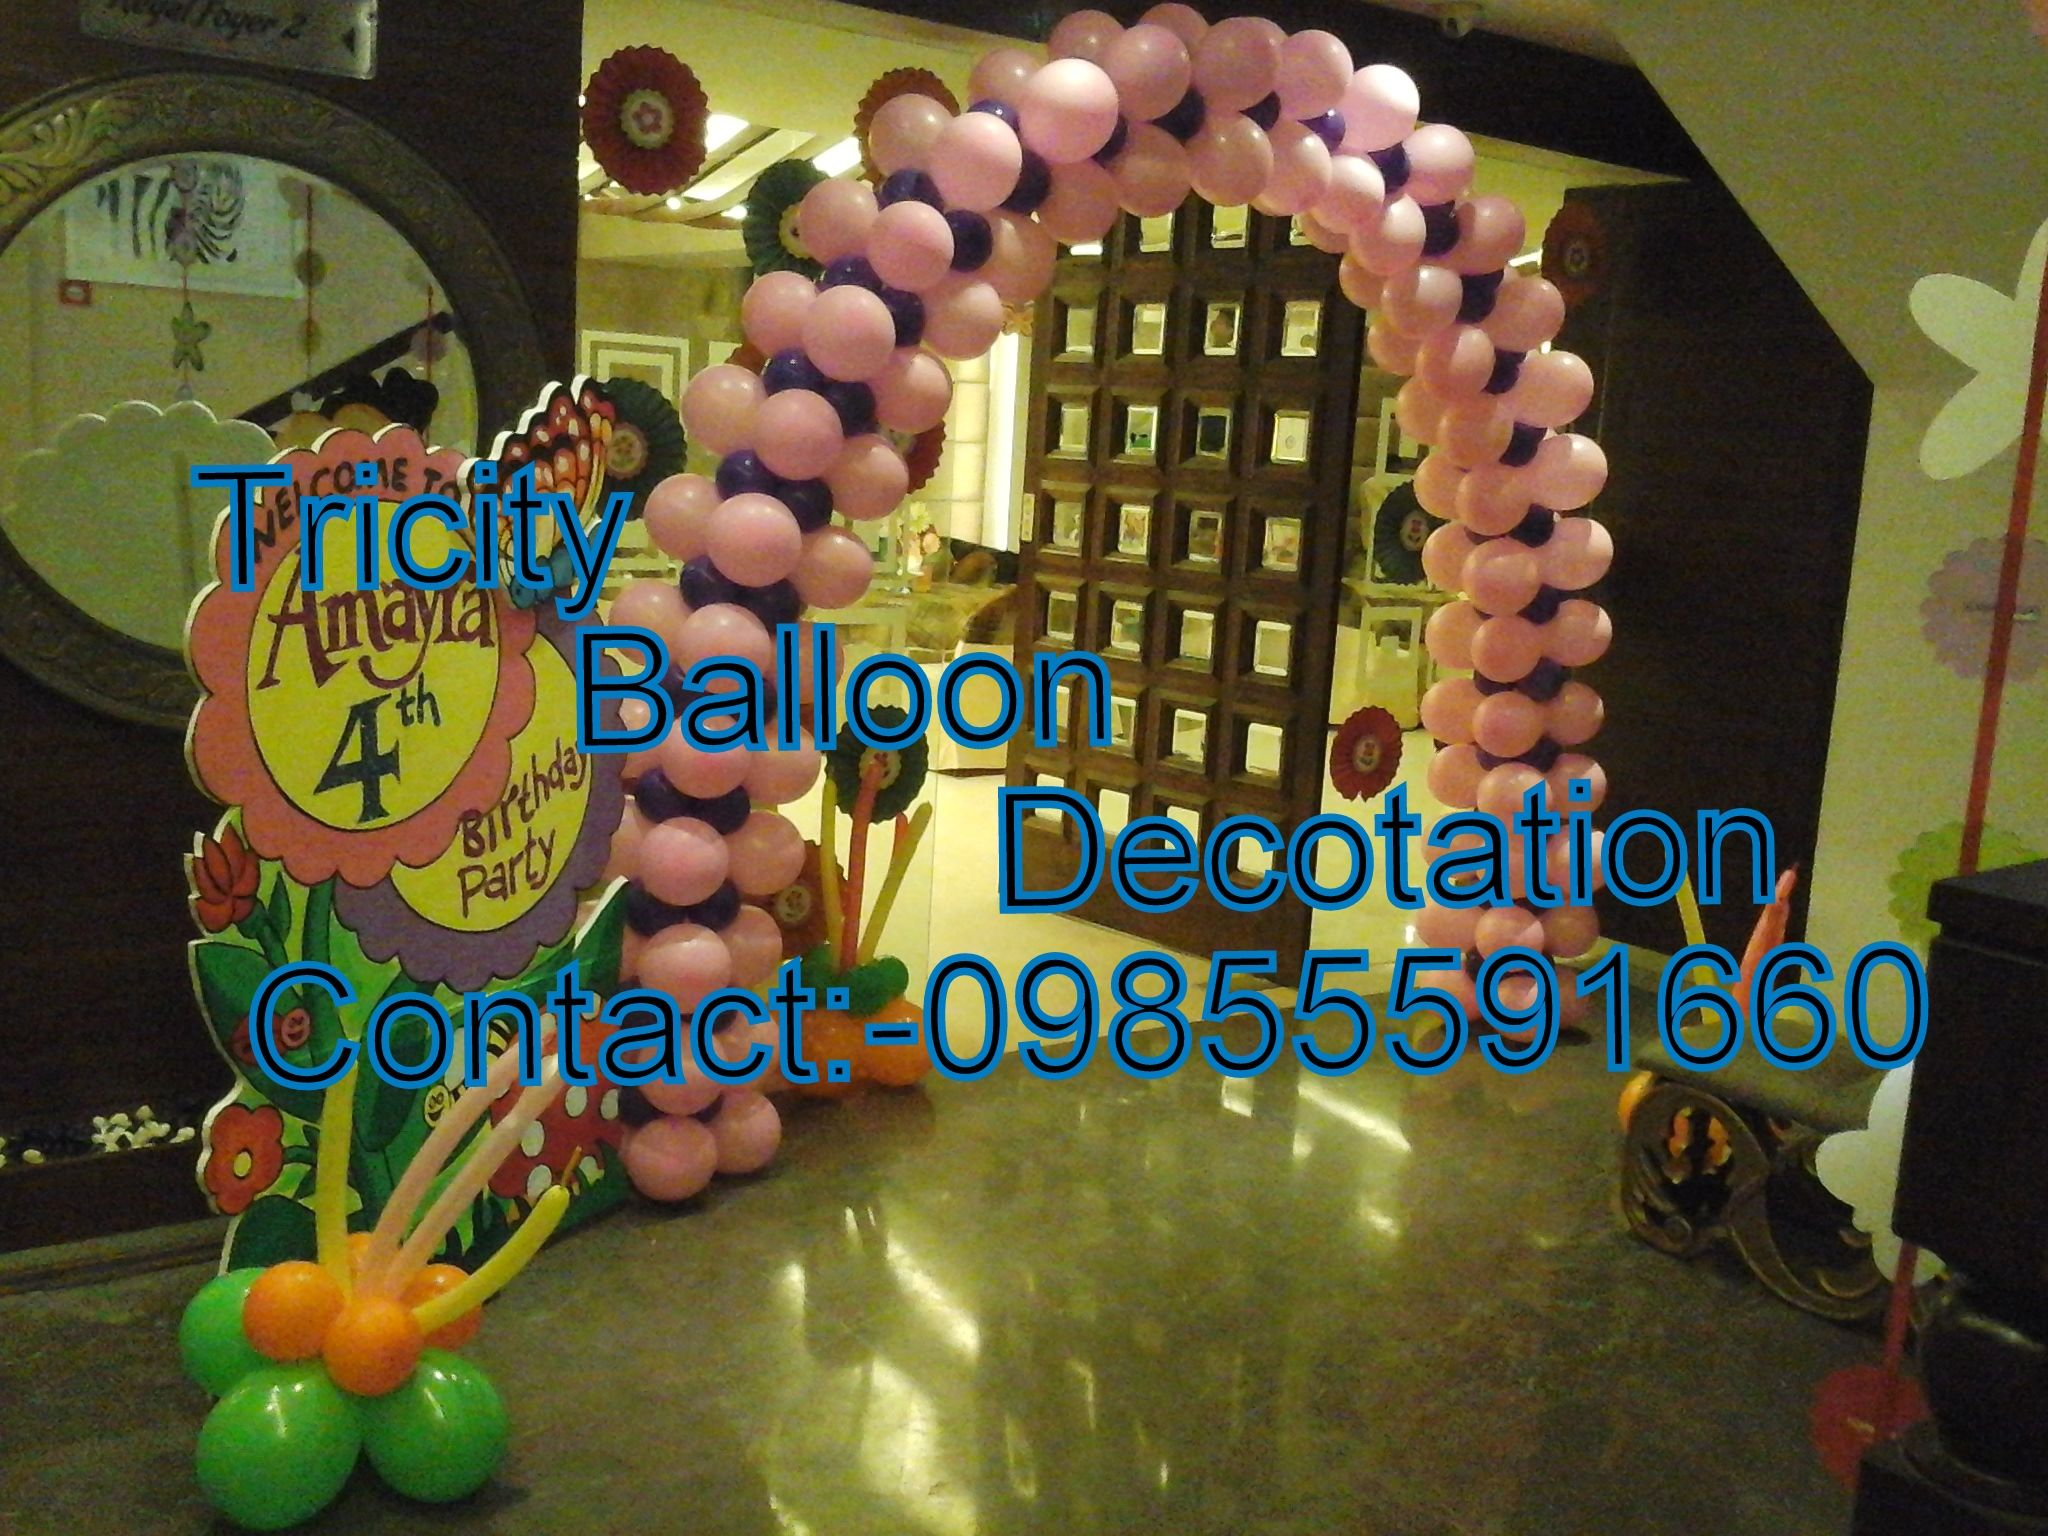 all services in event organizer theme party birthday party school function new opening wedding function jumping